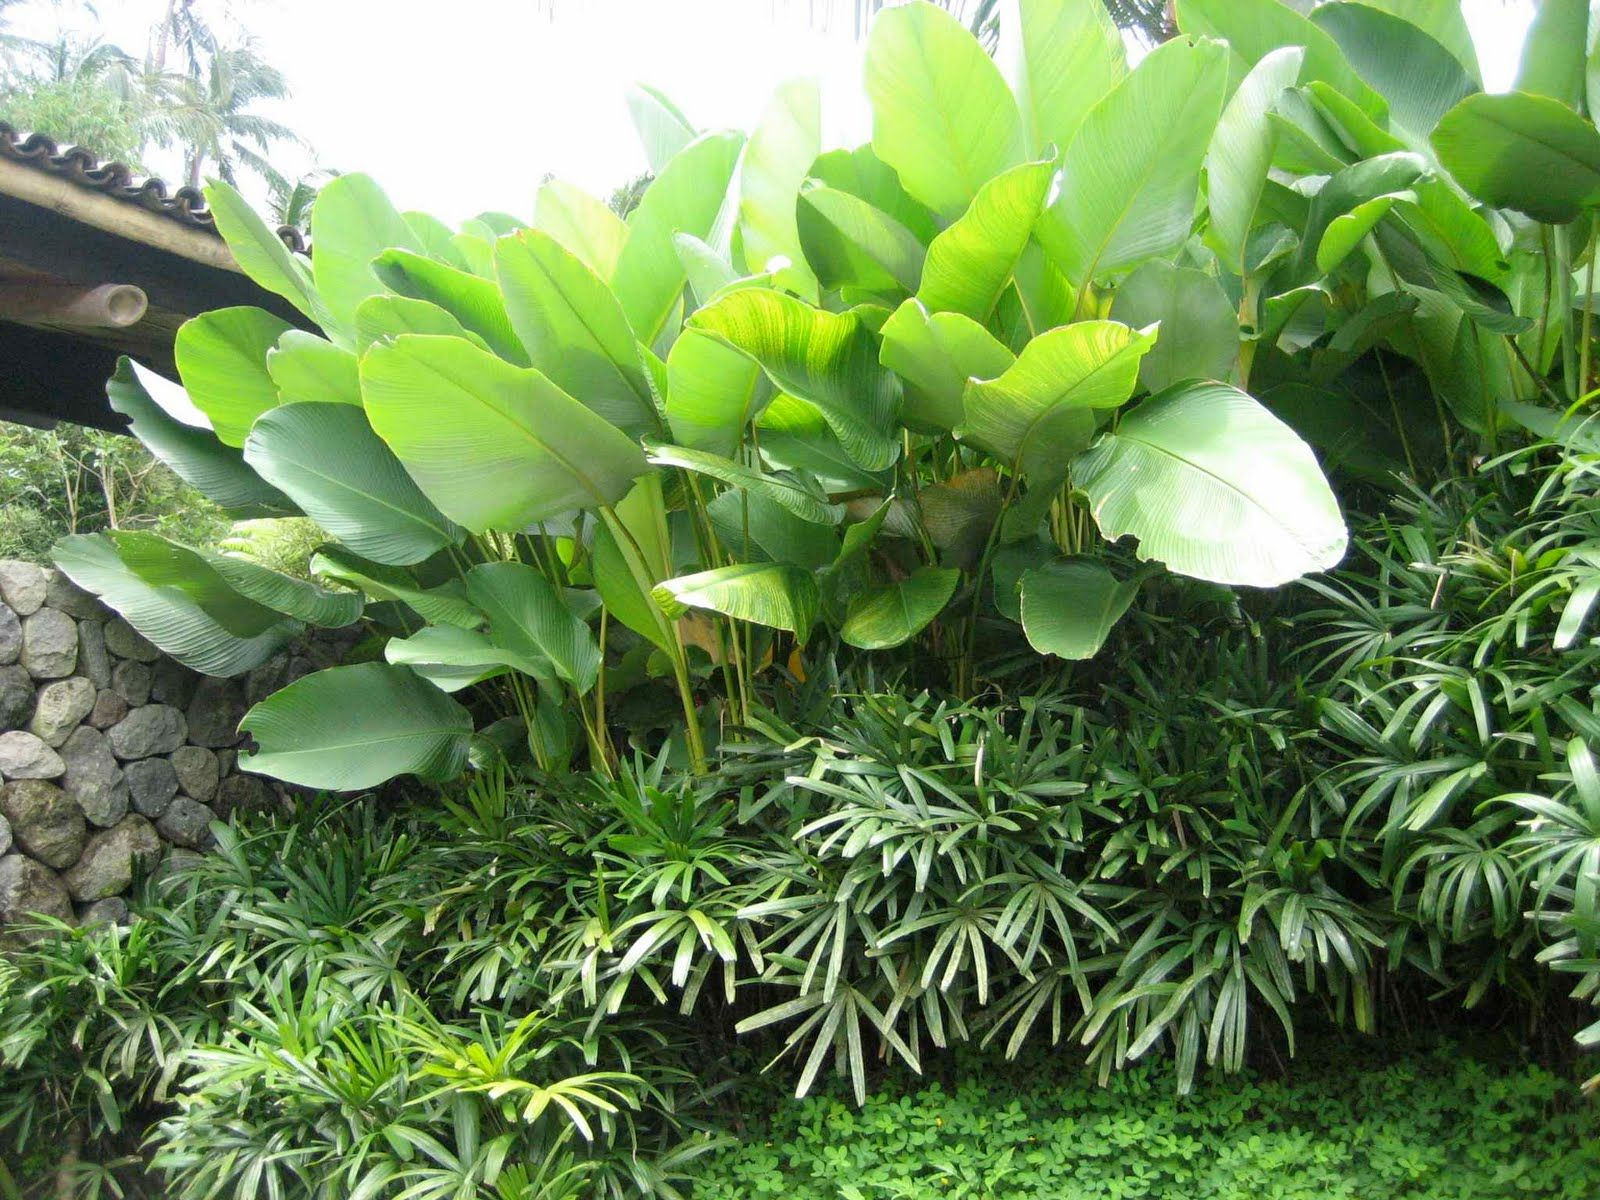 Tropical Garden Design tropical garden design ideas tropical garden ideas photo album patiofurn home design ideas Stone Wall Next To Calathea Lutea And Rhapis Sp Ponce Veridiano Garden Tropical Garden Designtropical